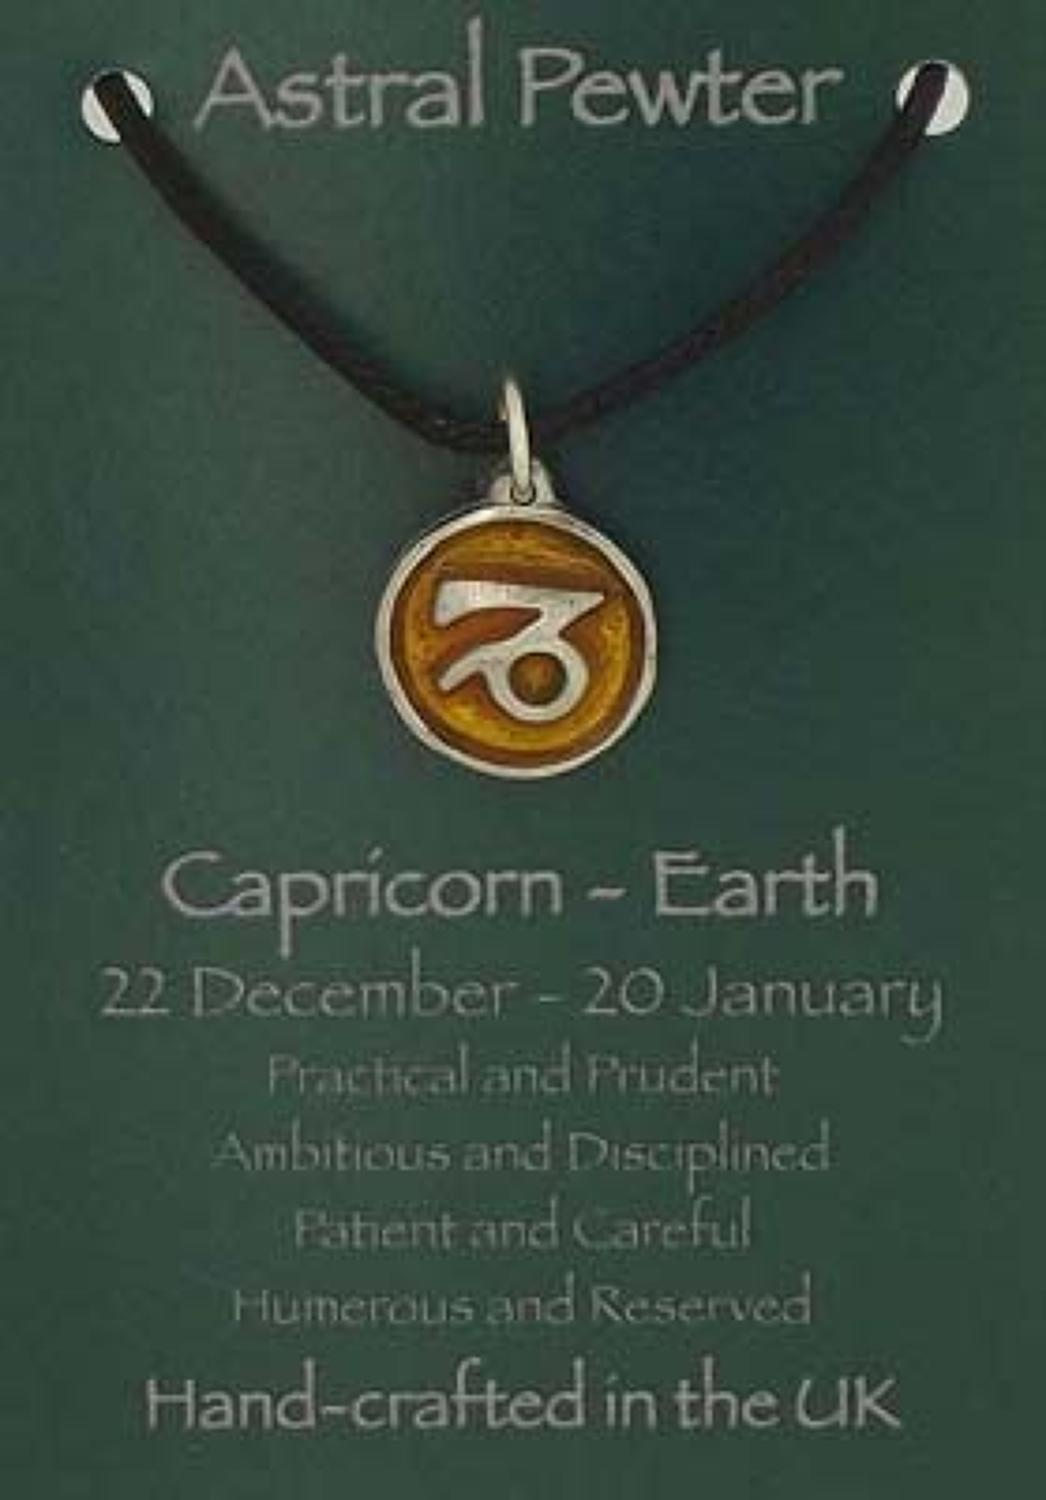 P1287 Capricorn - Earth